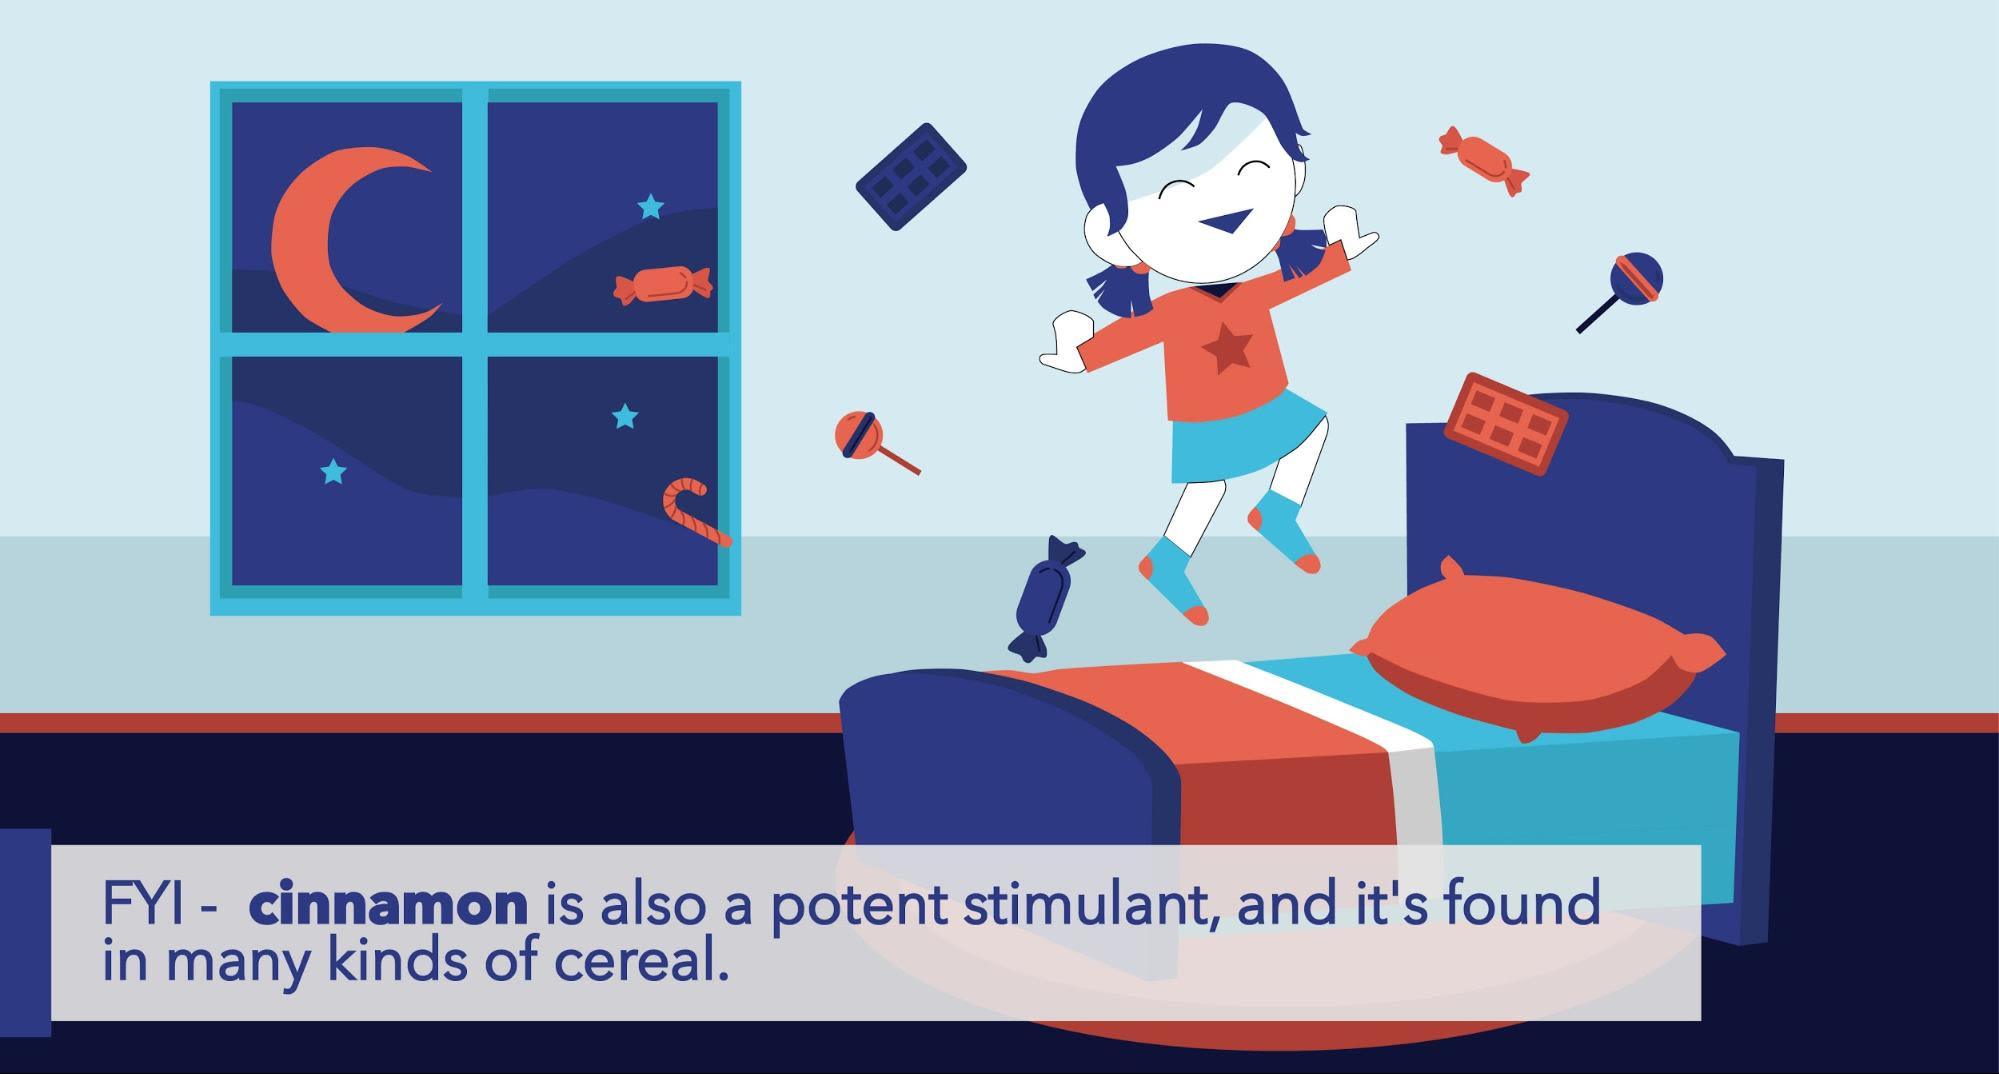 cinnamon is also a potent stimulant, and it's found in many kinds of cereal.